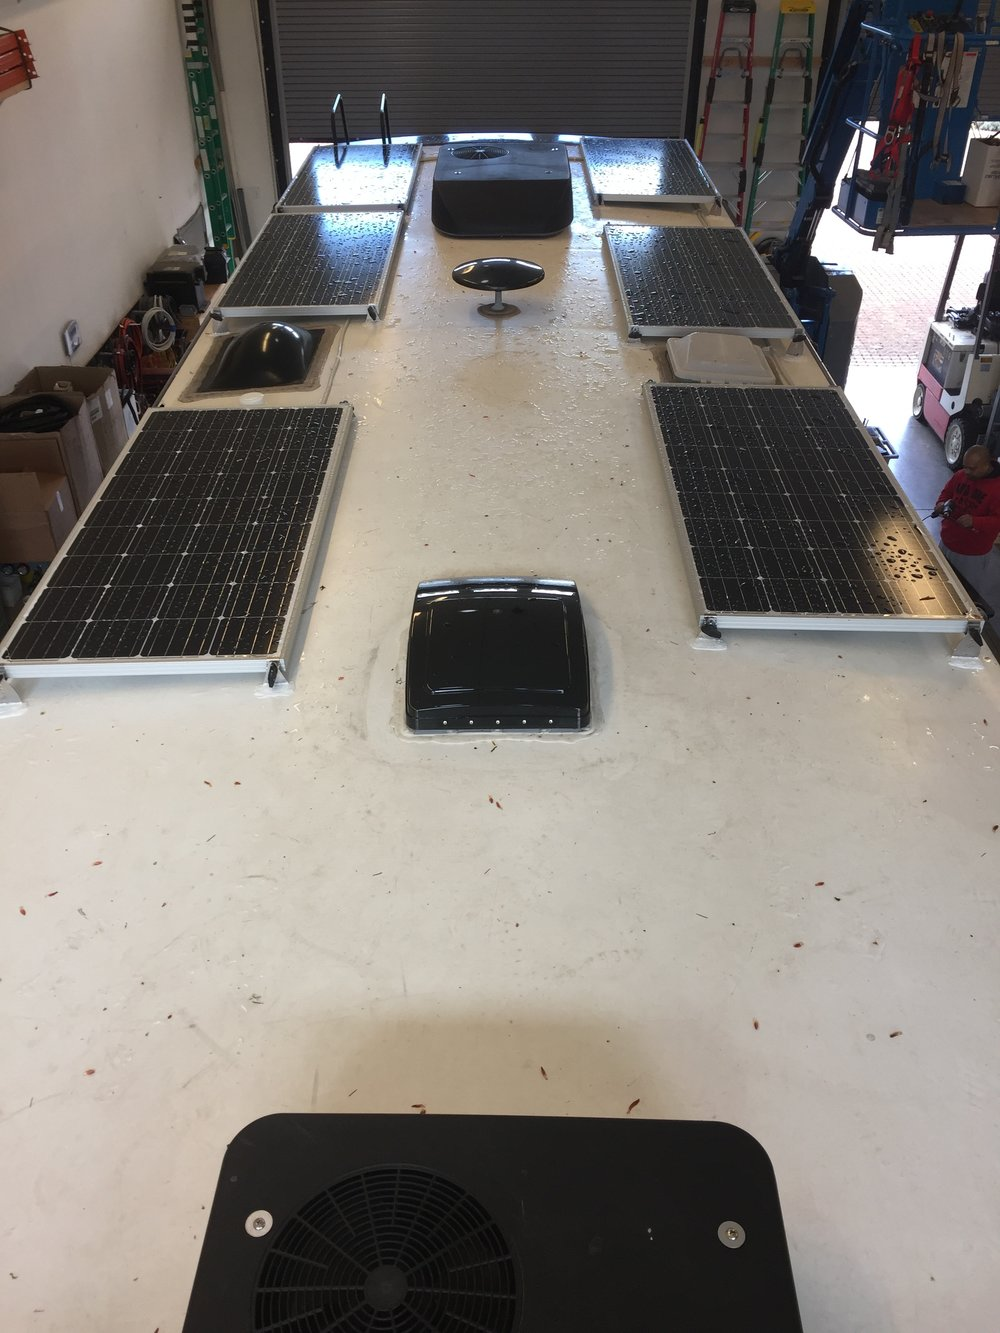 "Equipment Added: 6x 160W Solar Panel Kits 1x Roof C-Box 1x SunRunner Signature 100A System Core 1x BlueTooth Smart Dongle 3x 19.5"" Tilt Bar Sets 1x Magnum Monitor ME-BMK 4x AGM-GPL-L116 6V 400Ah Batteries"